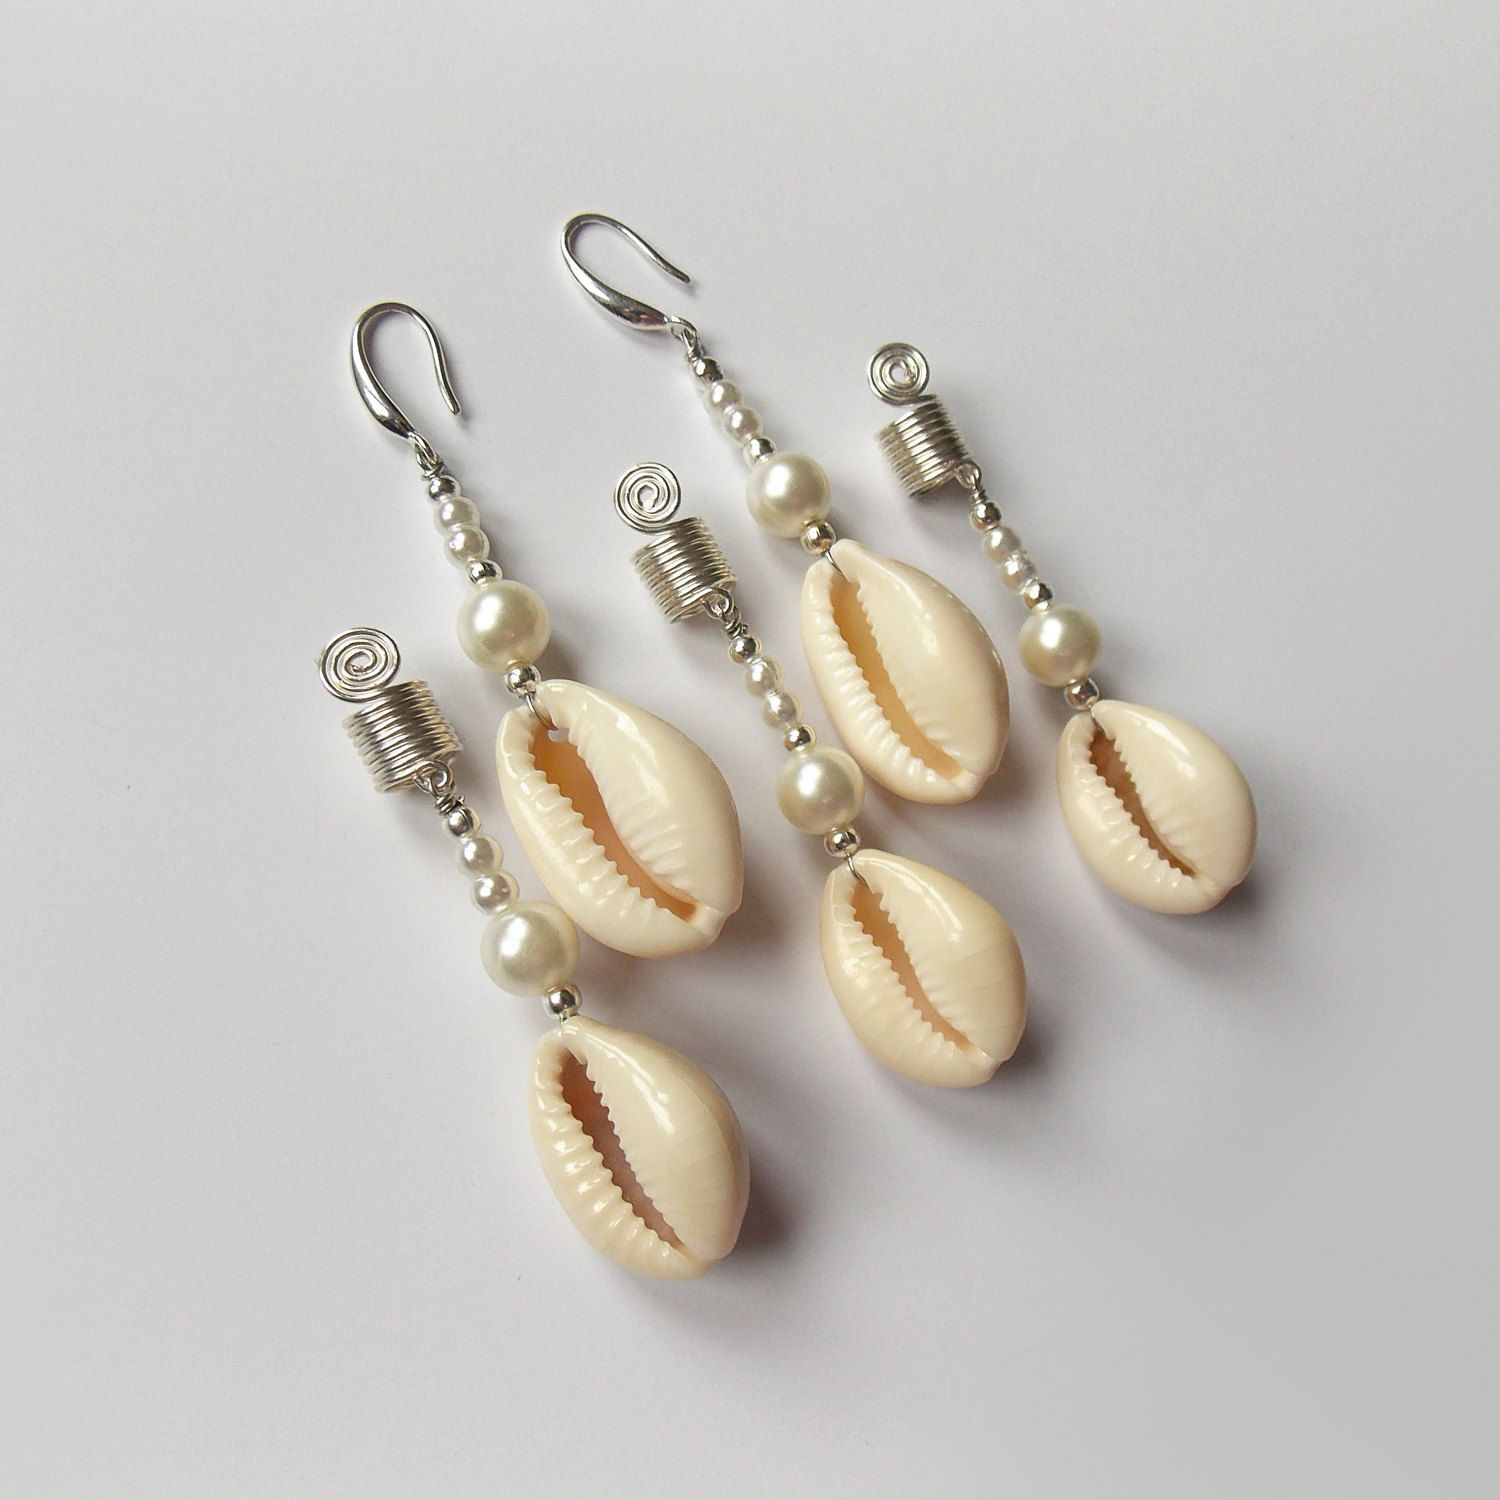 earrings wedding handmade designed shell artisan beach pink elegant and pearl jewelry